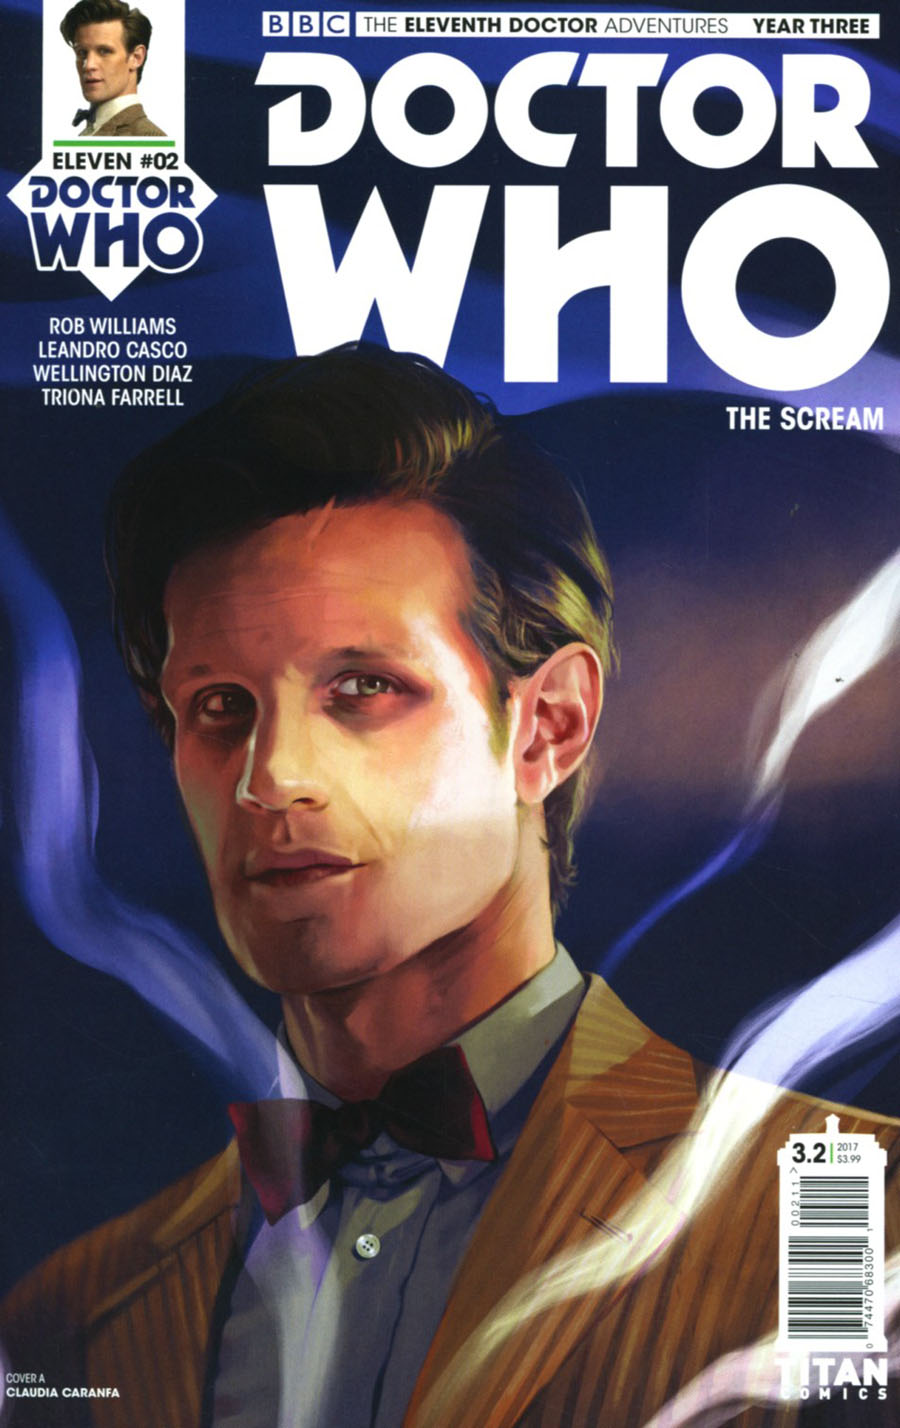 Doctor Who 11th Doctor Year Three #2 Cover A Regular Claudia Caranfa Cover